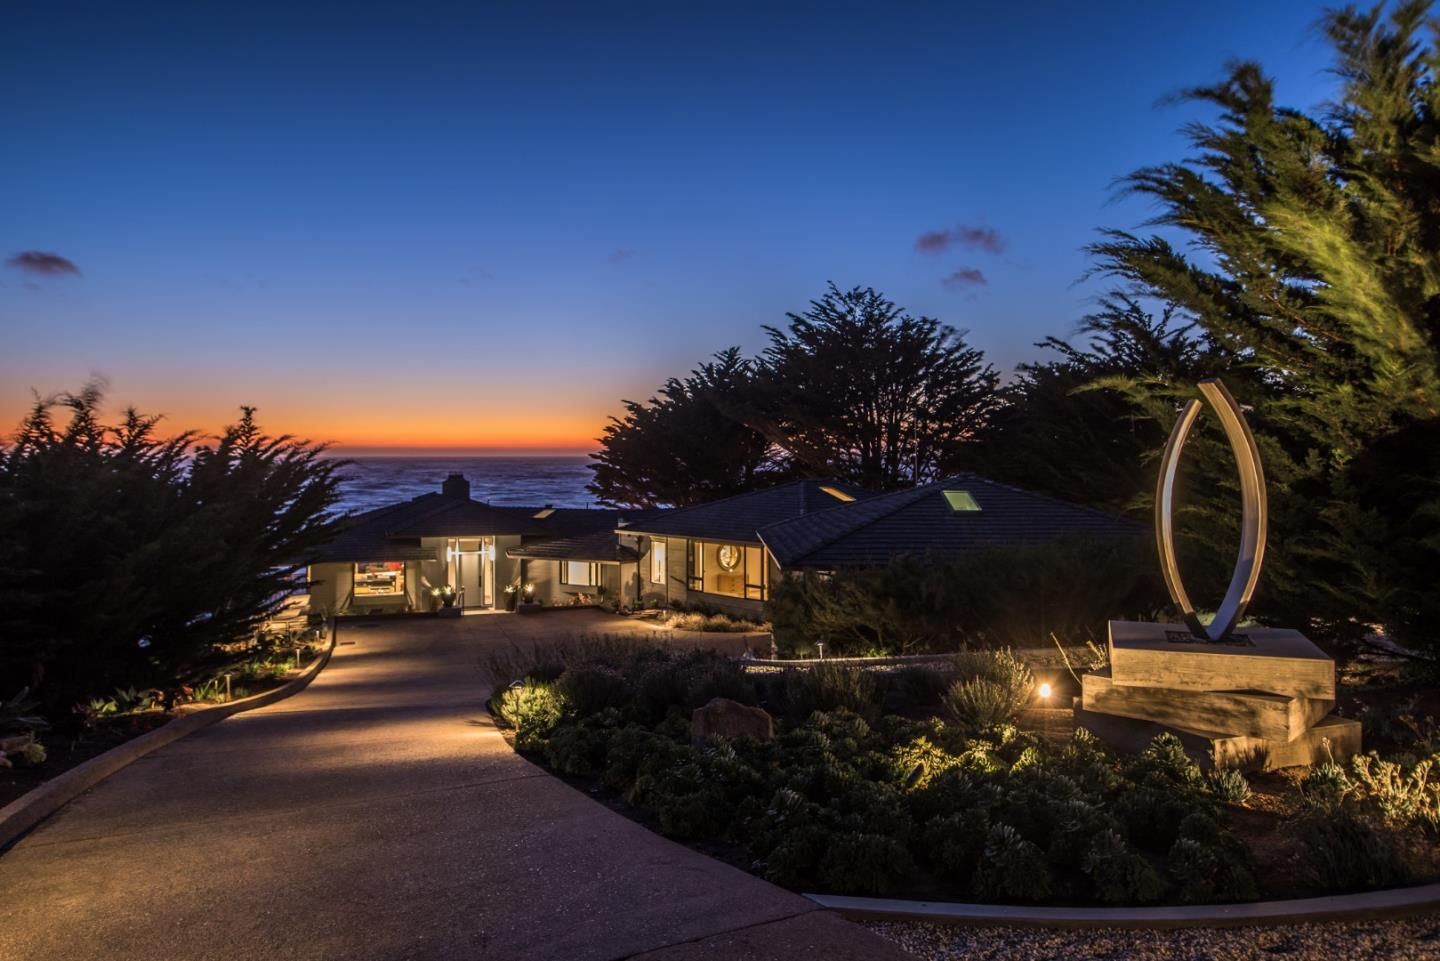 30950 Aurora Del Mar, CARMEL HIGHLANDS, California 93923, 3 Bedrooms Bedrooms, ,2 BathroomsBathrooms,Residential,For Sale,Otter Cove,30950 Aurora Del Mar,ML81737436